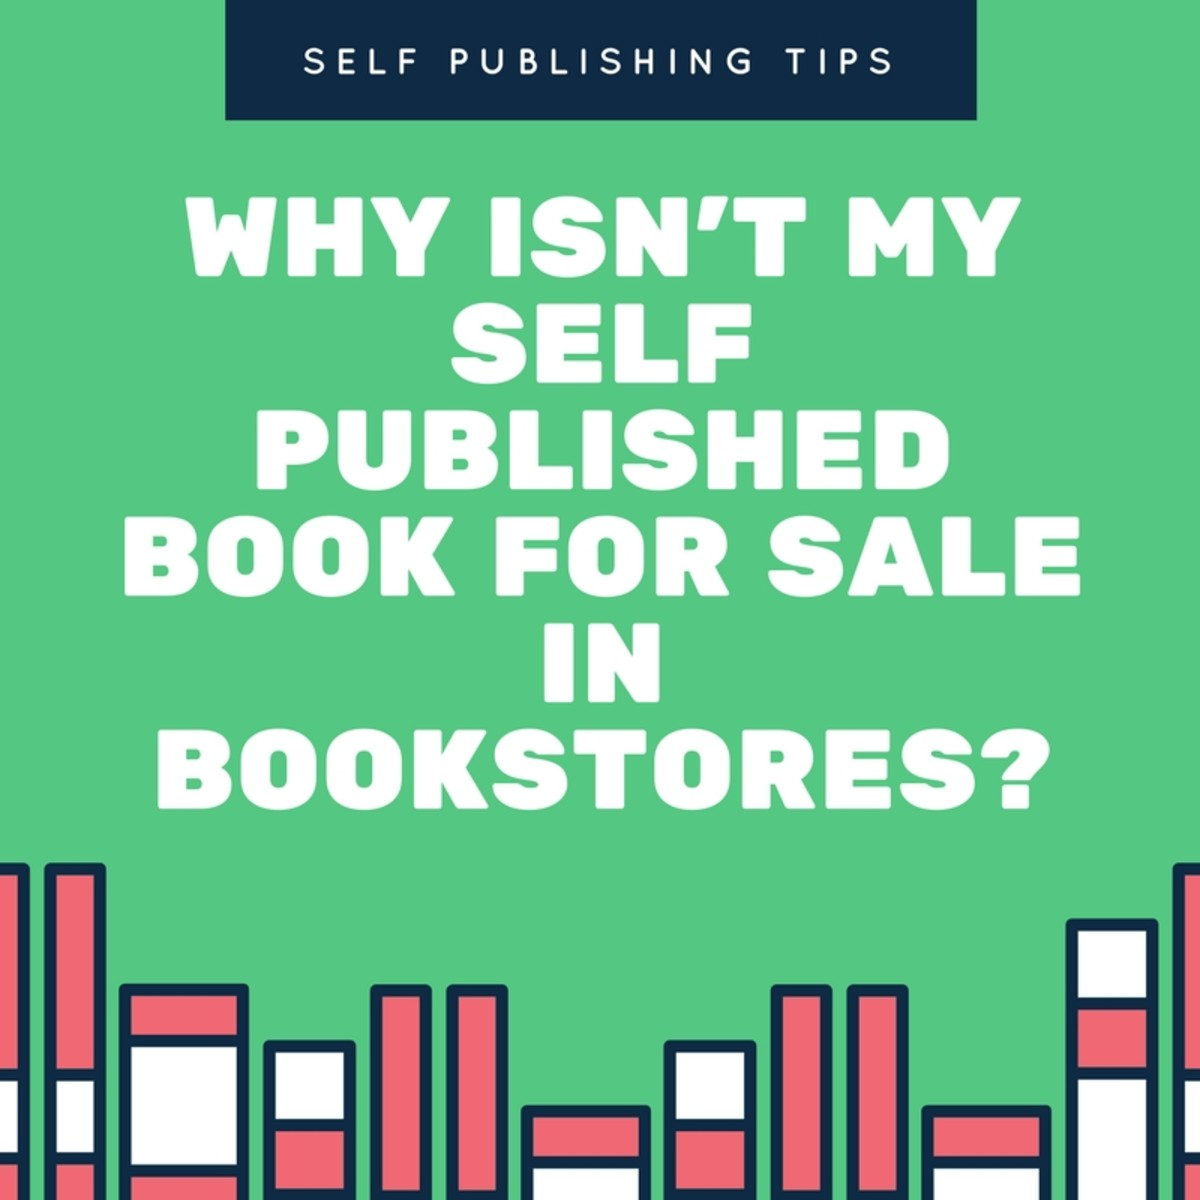 Learn more about the process of gaining retail distribution for self-published books.